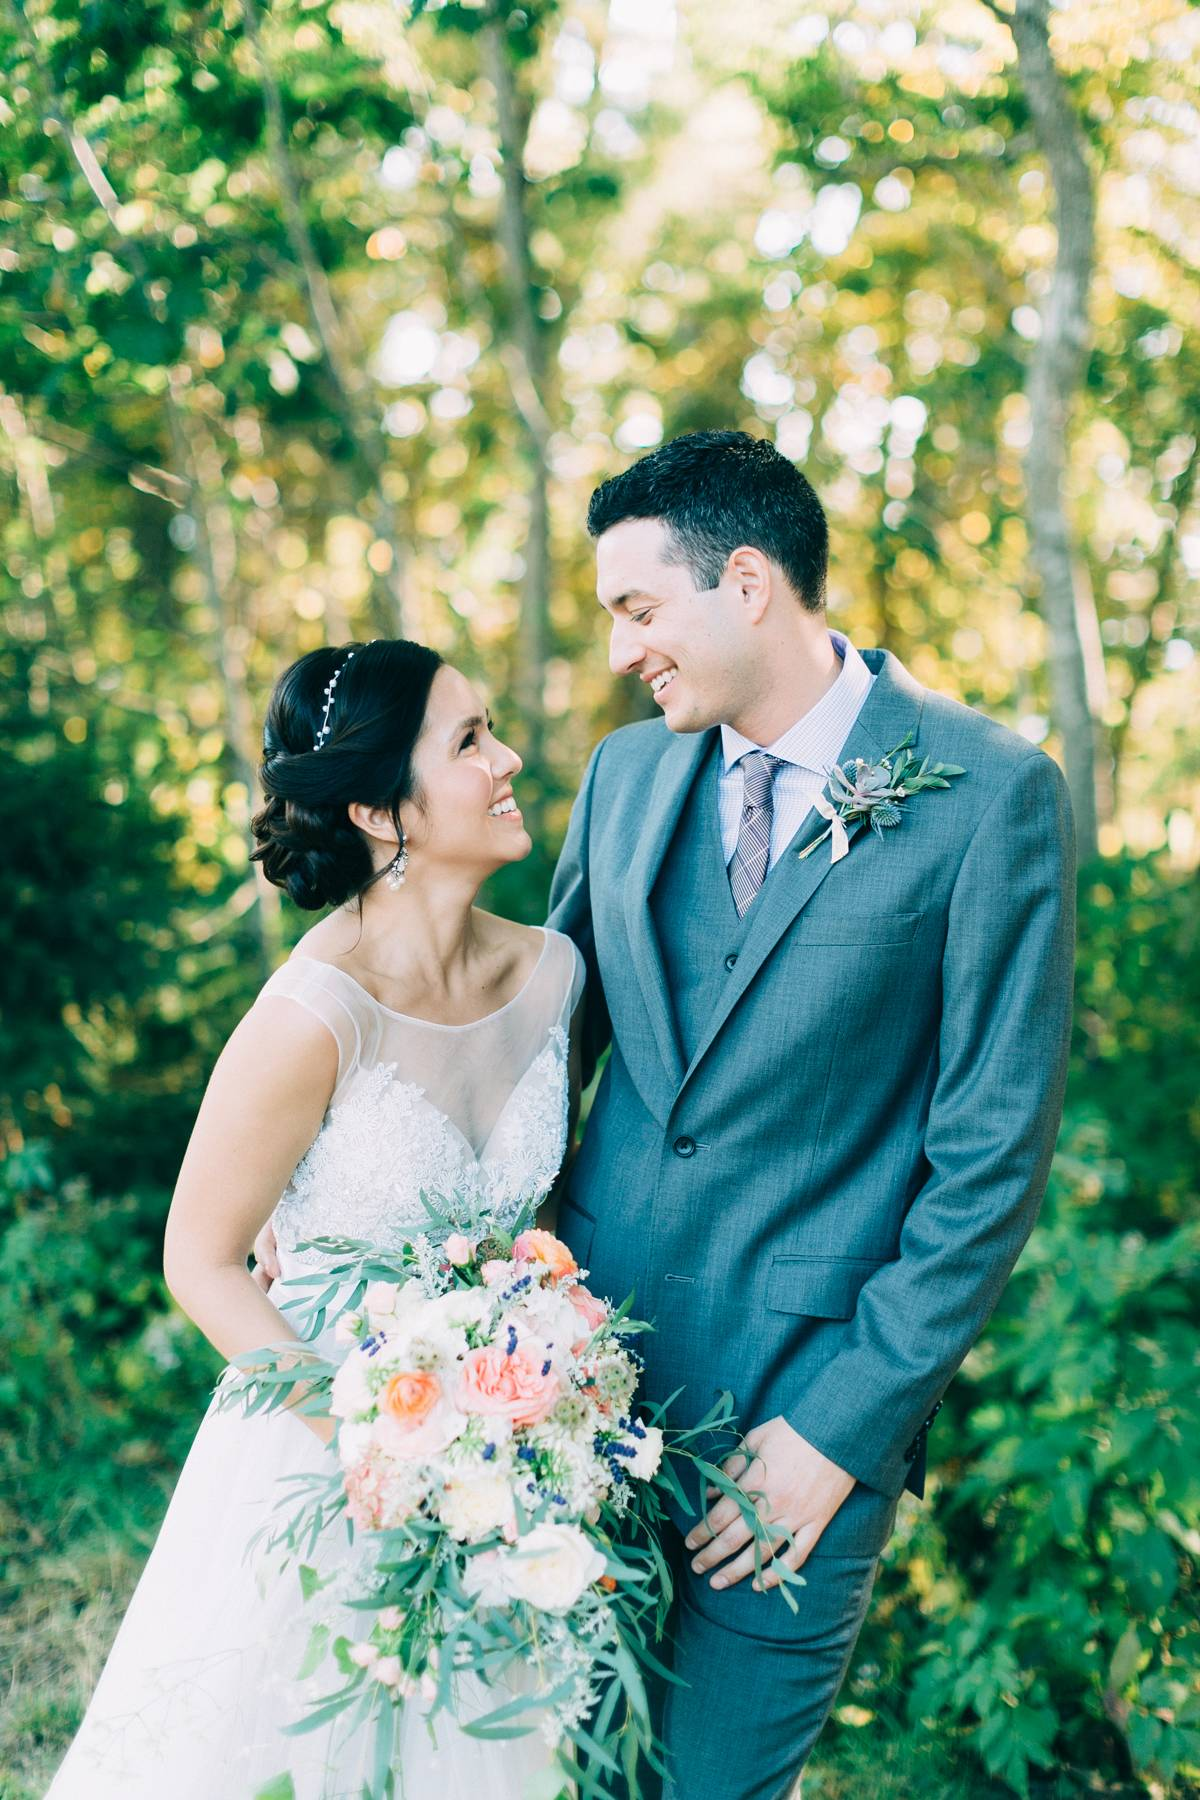 maine-wedding-7-08092015-ky